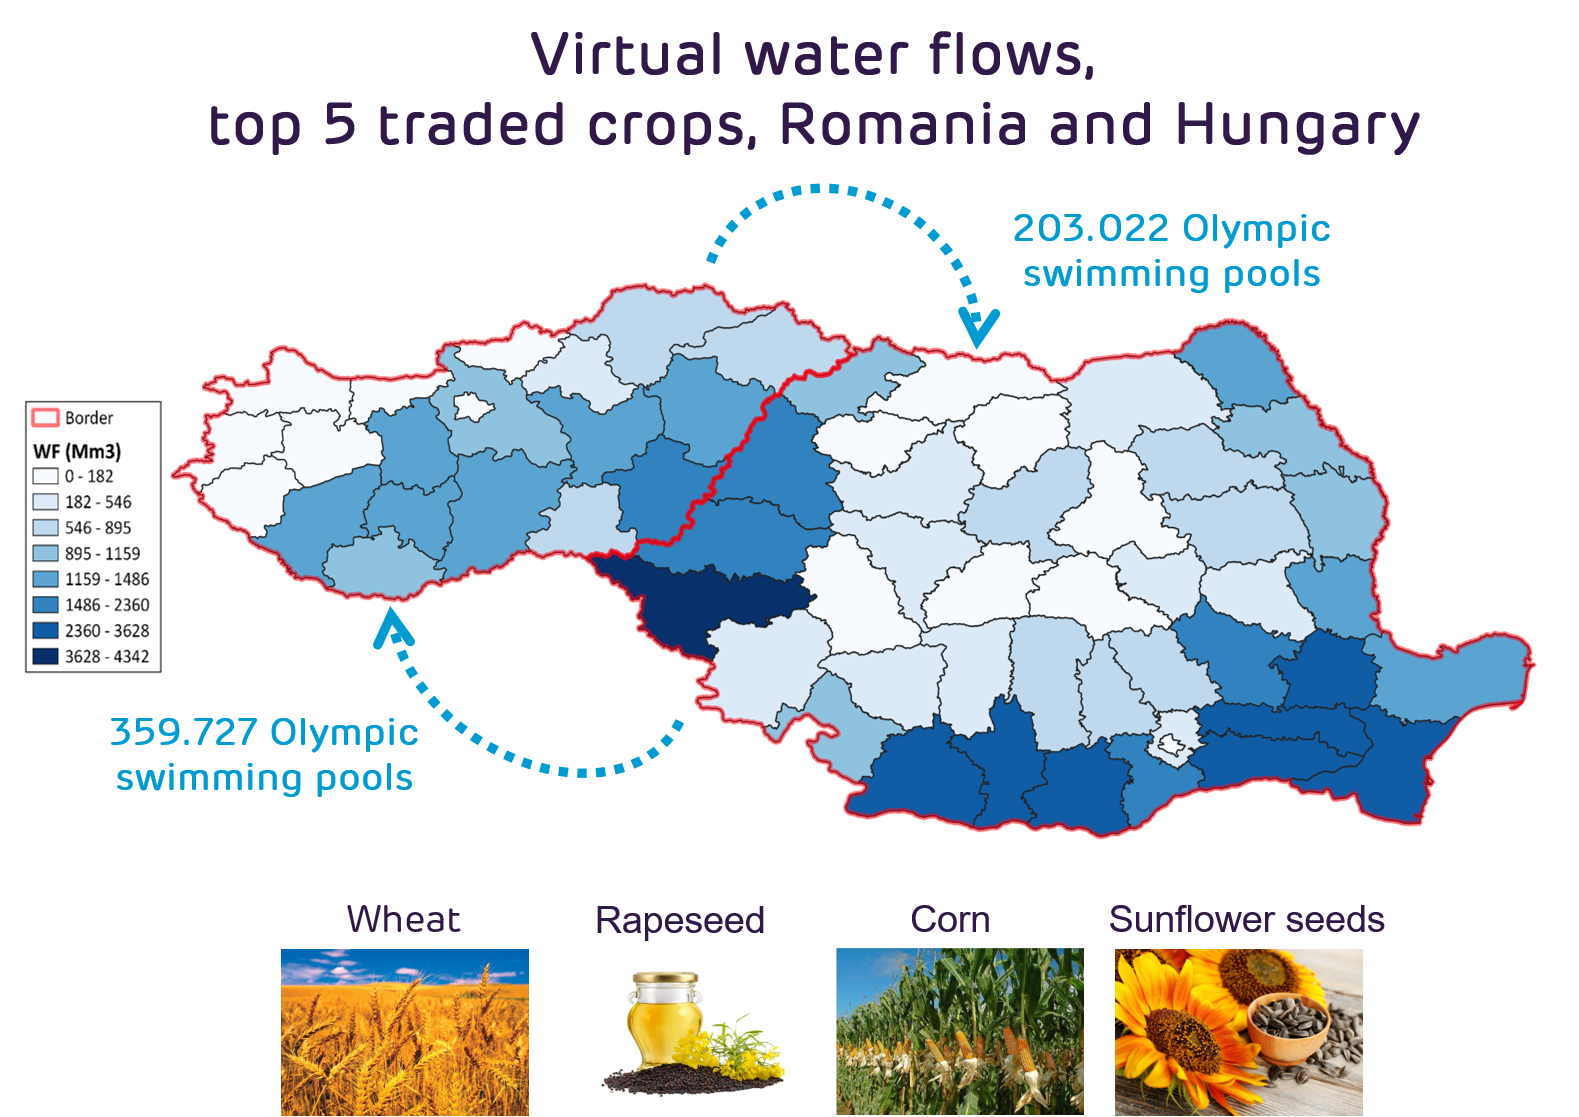 Wetskills' CaseBooster and WFI team up to gain insight into Central & Eastern Europe virtual water flows